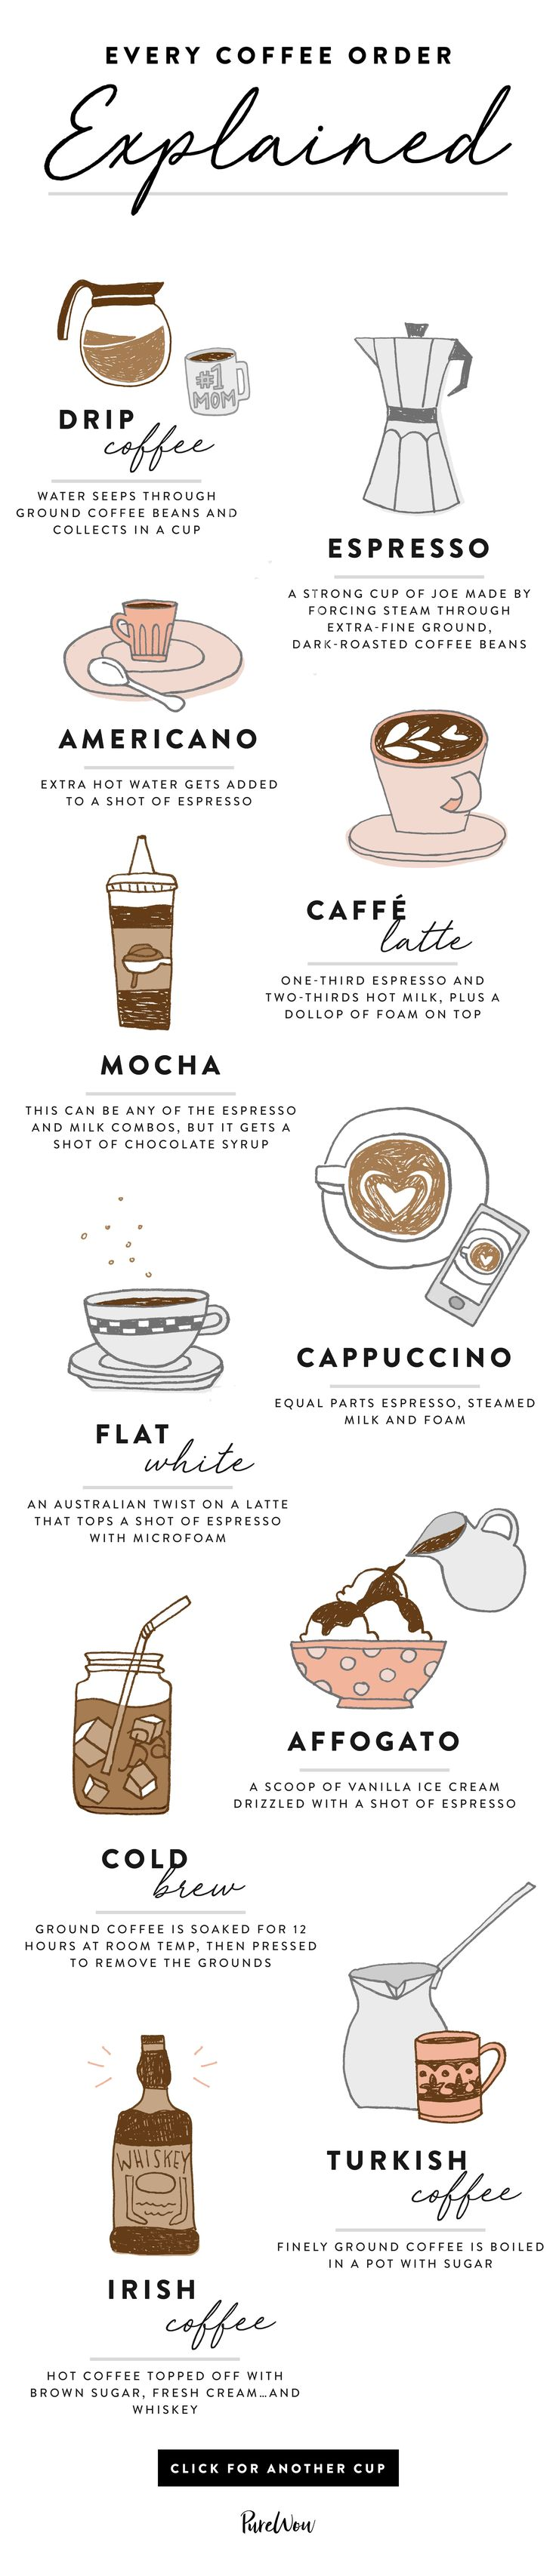 From cappuccinos to cold brew, save this handy guide to every coffee order and find your new fave. #Coffeeideas